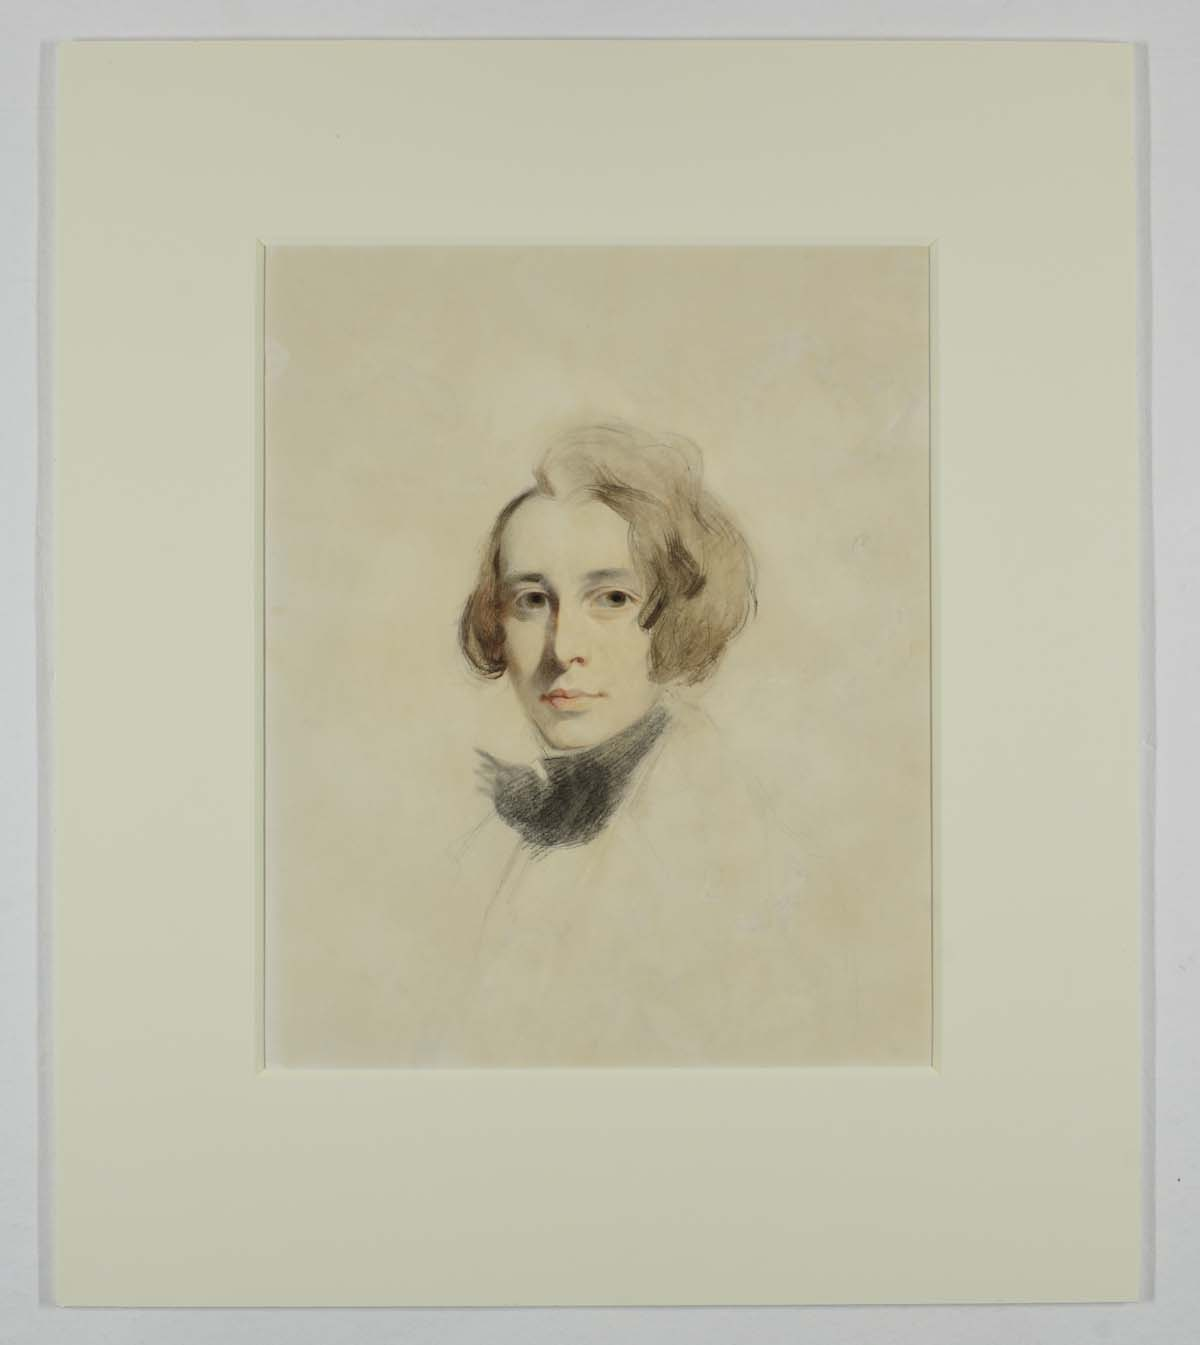 sketch of a young Charles Dickens, beardless with medium length hair